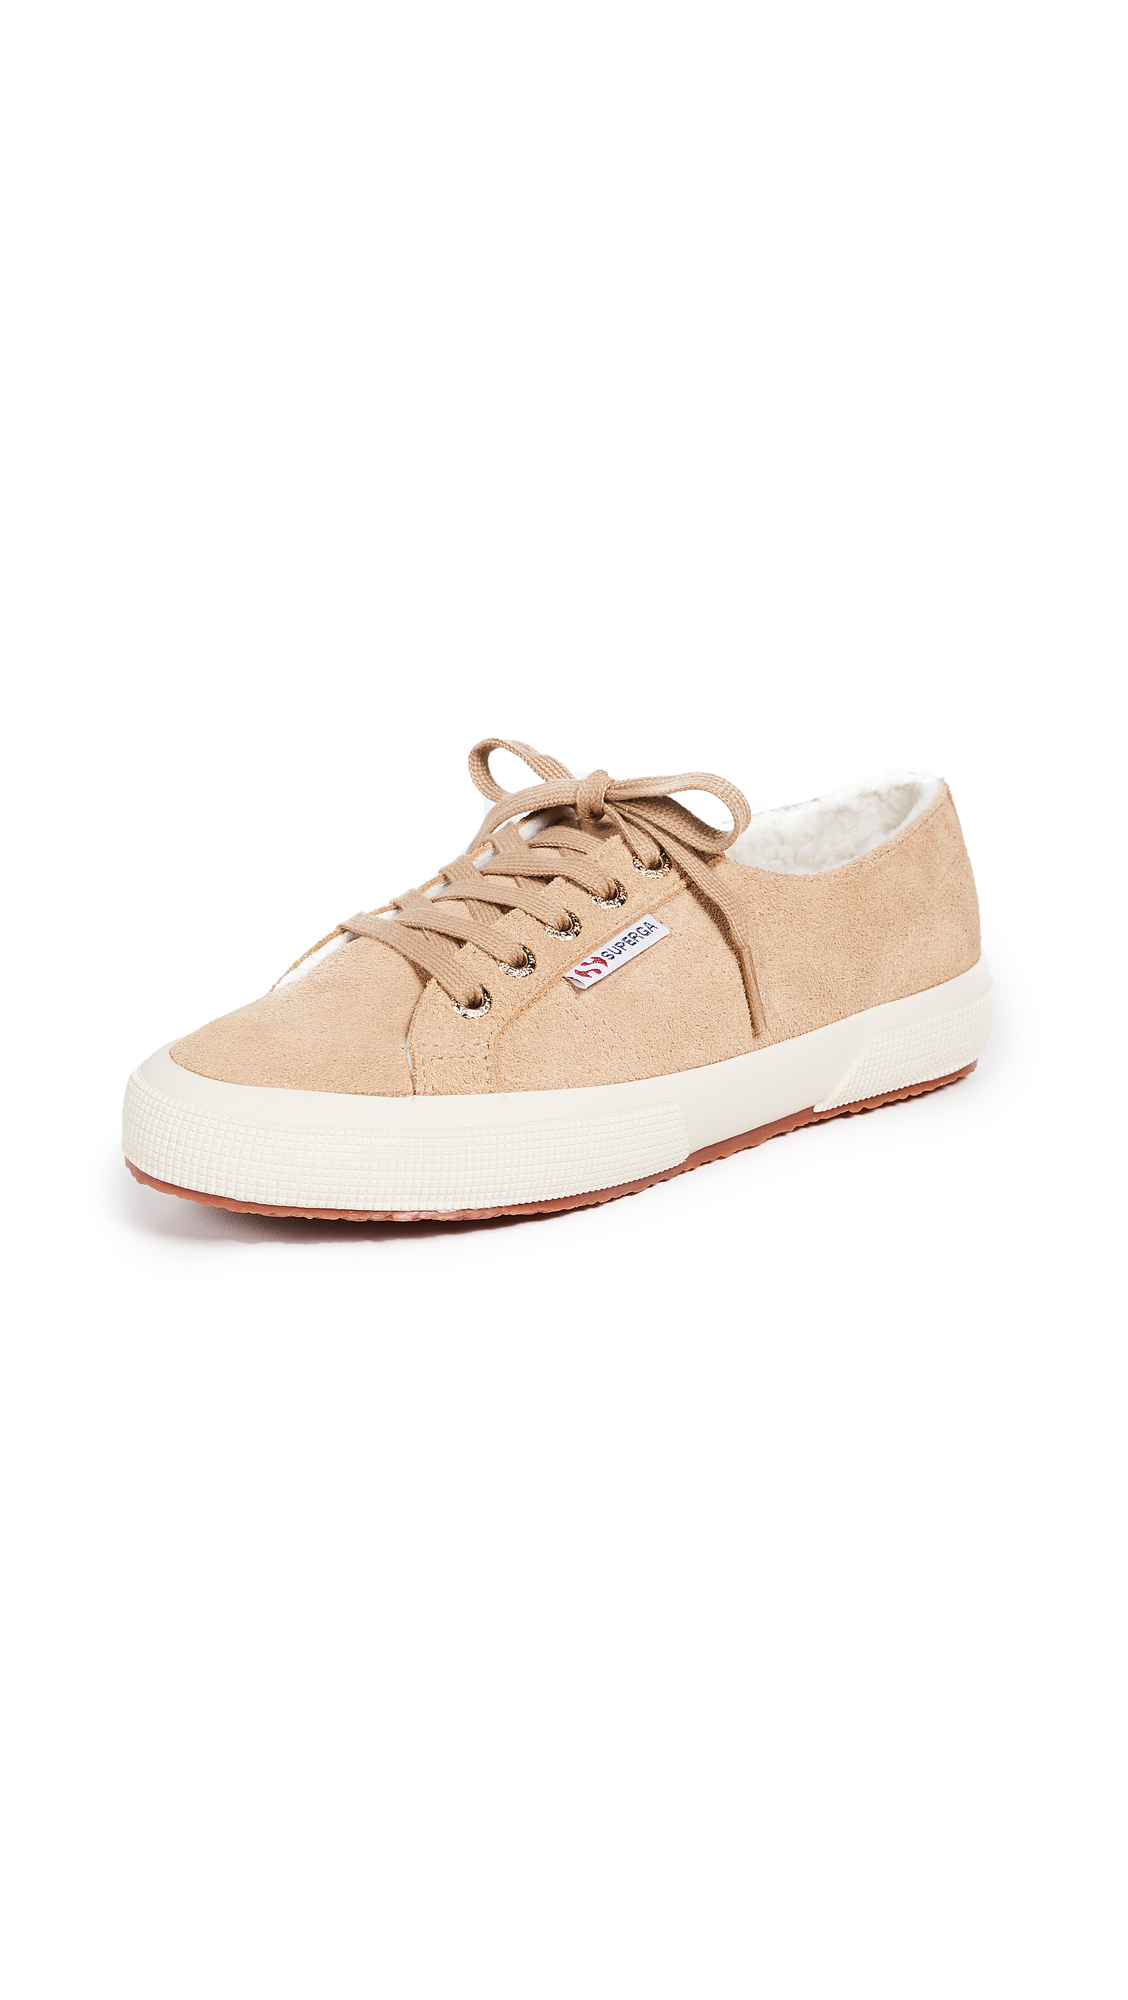 Superga 2750 Suede Lace Up Sneakers - Desert